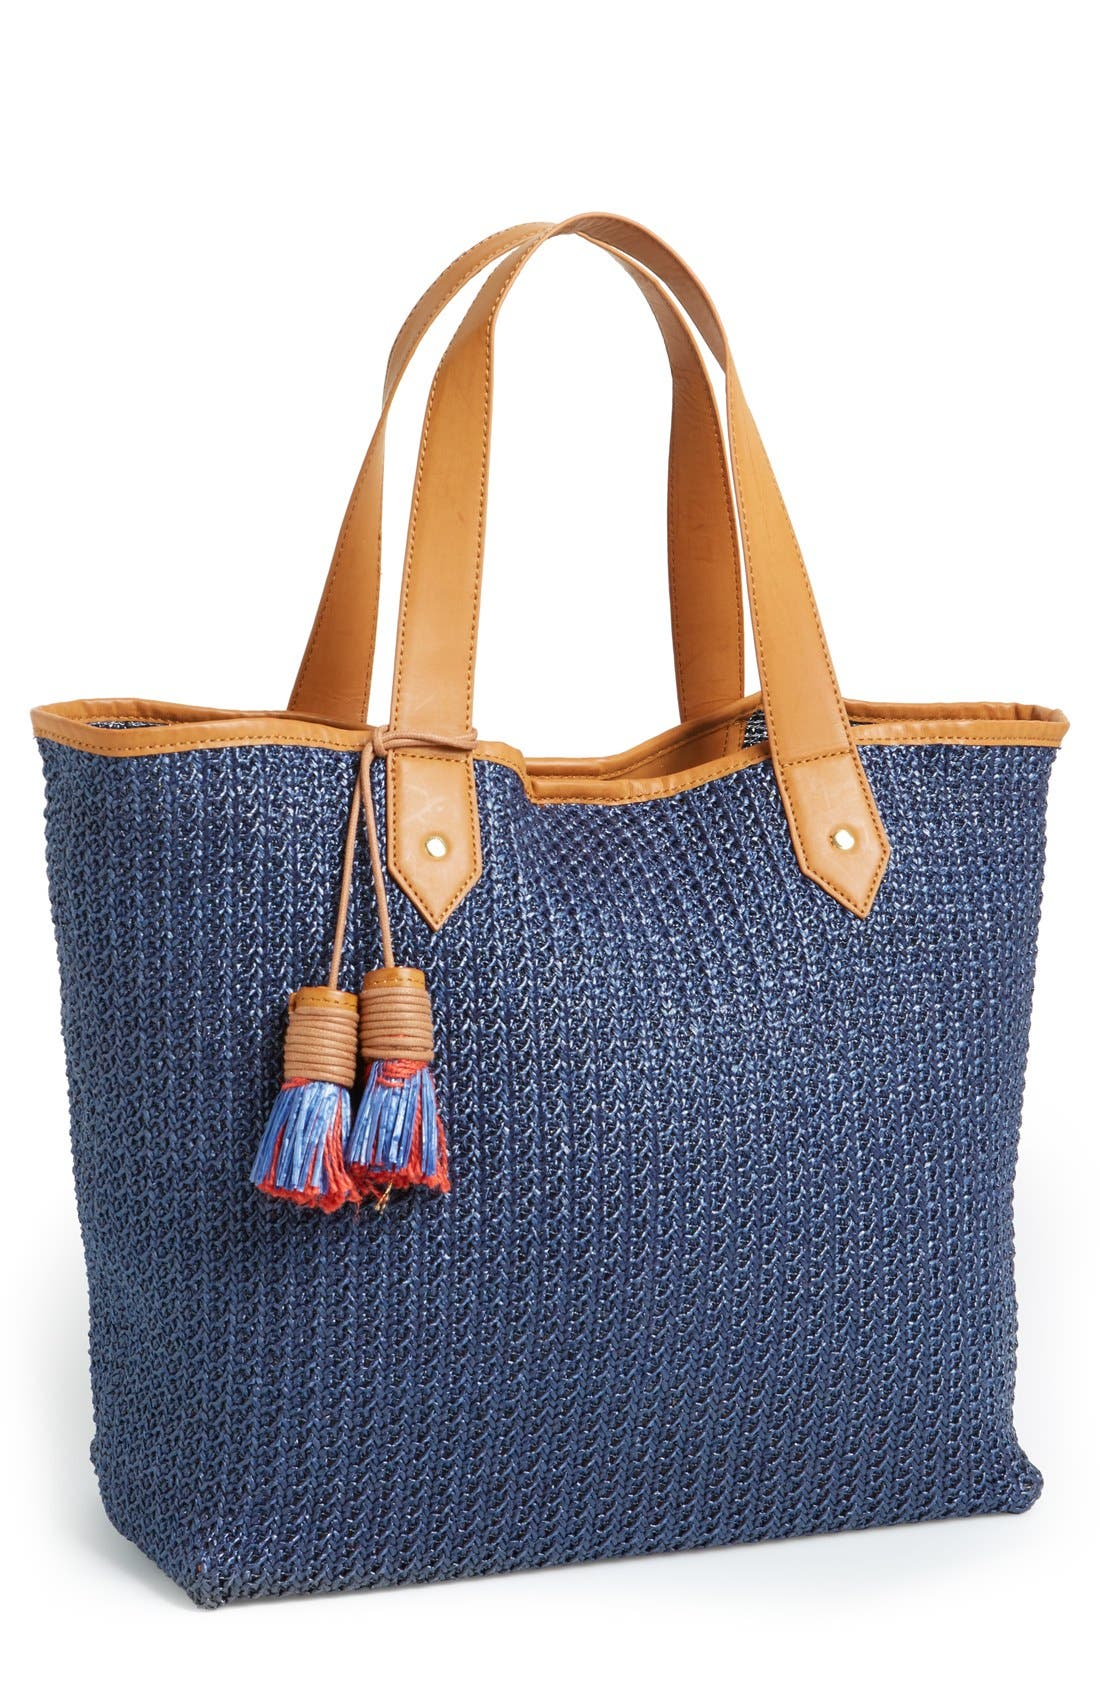 Alternate Image 1 Selected - Steven by Steve Madden 'Bcabo' Straw Tote